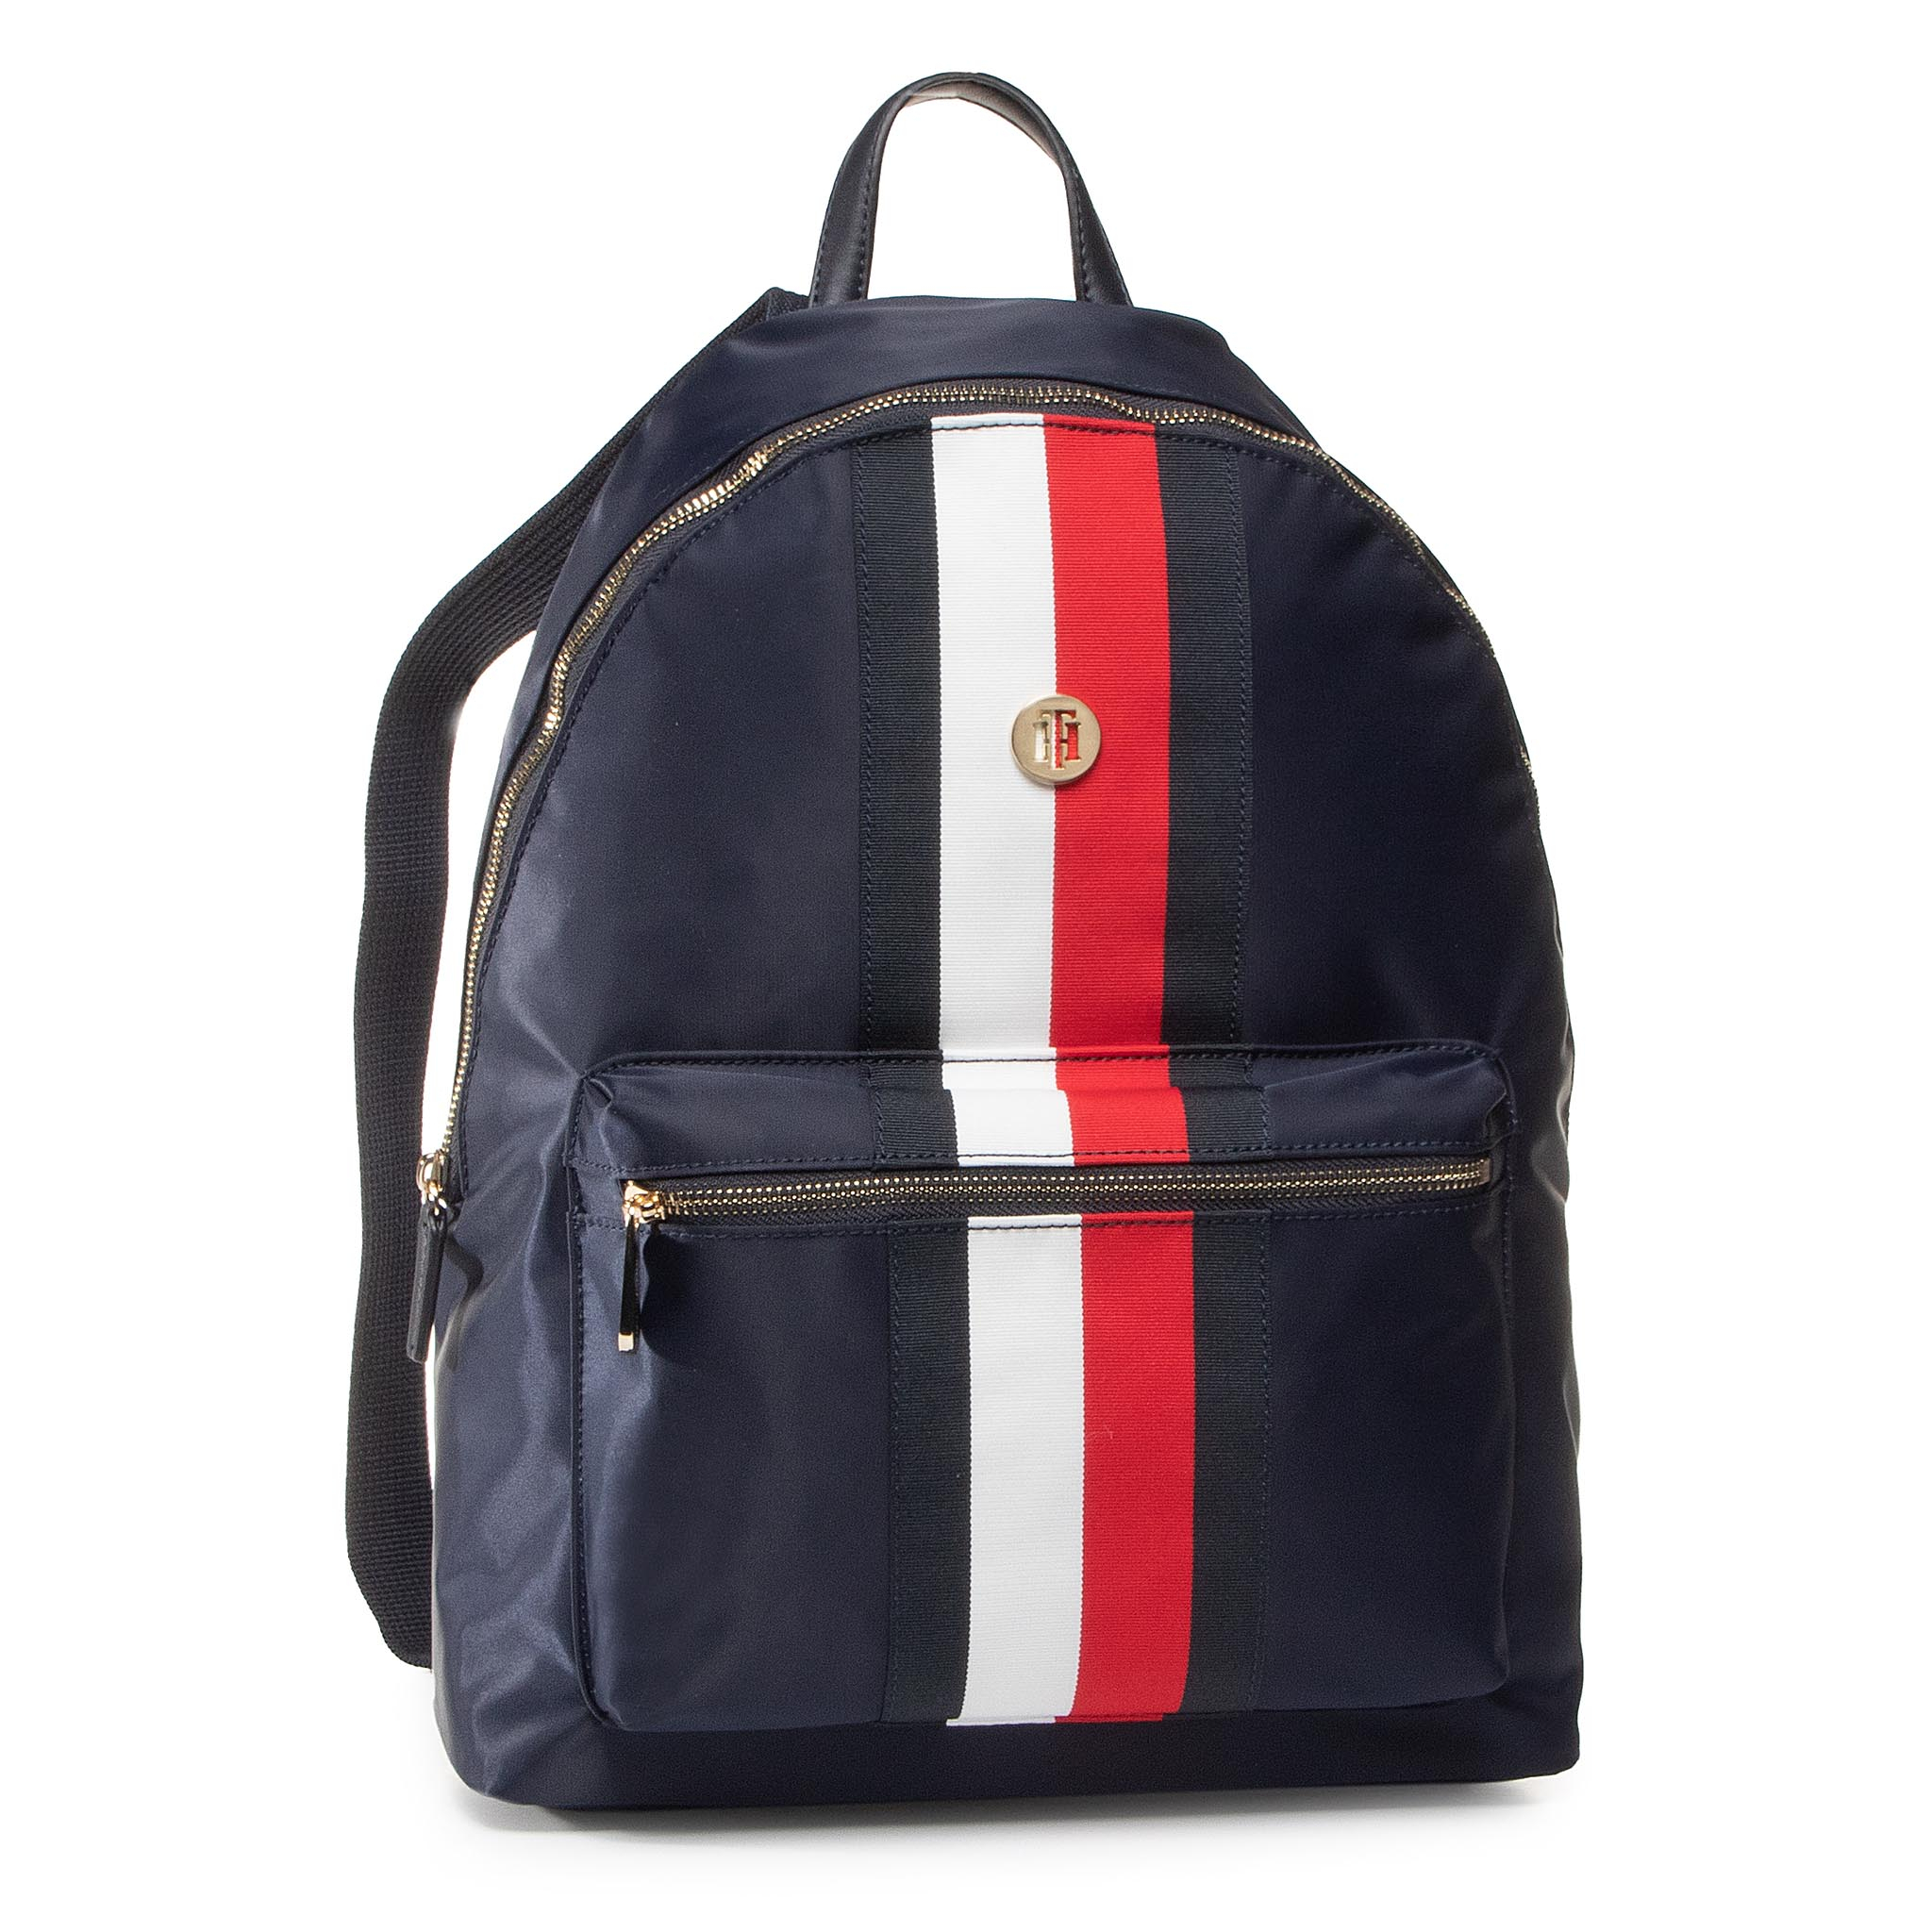 Rucsac Tommy Hilfiger - Poppy Backpack Corip Aw0aw08333 0gy imagine epantofi.ro 2021